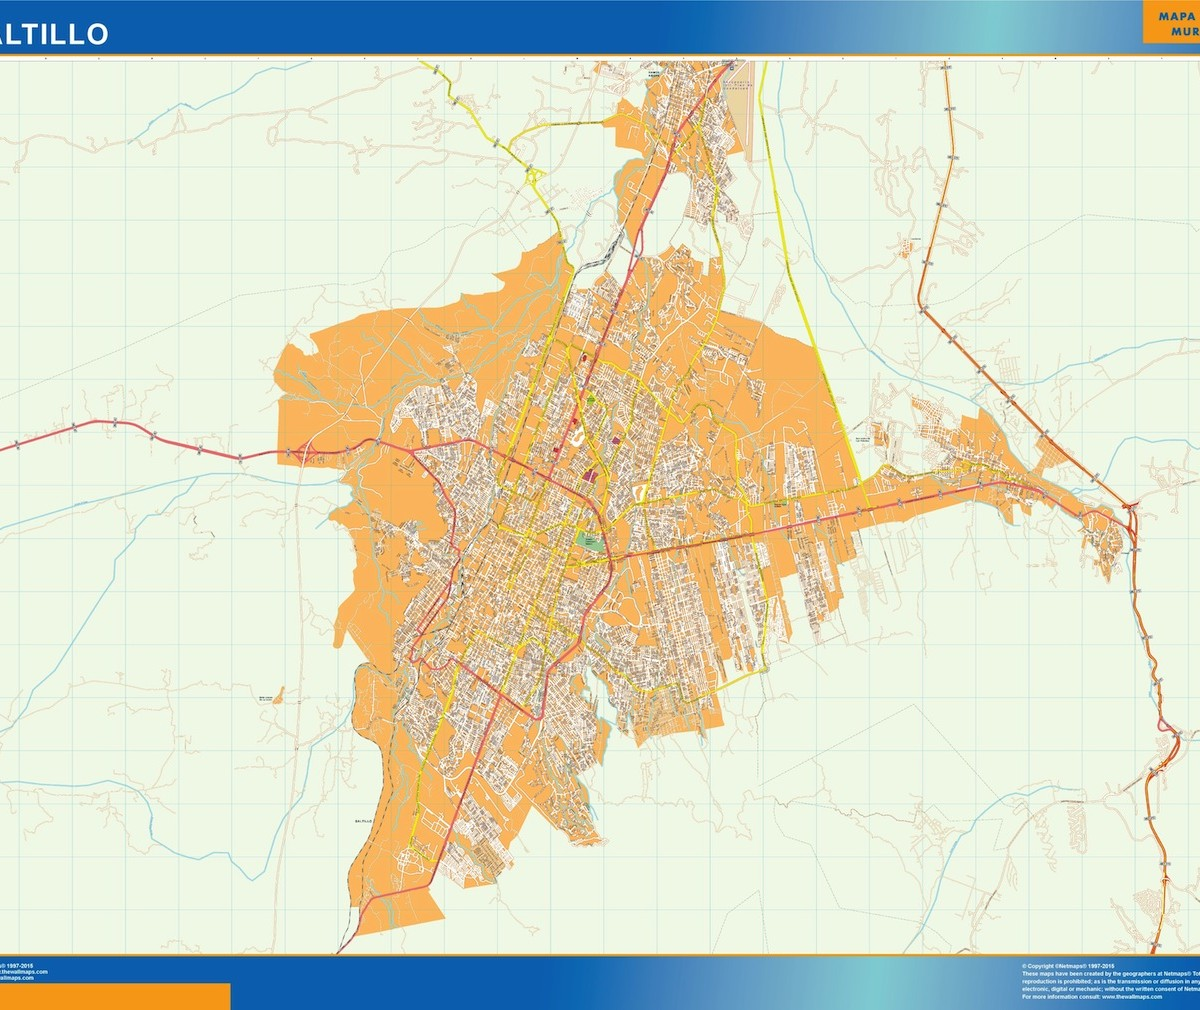 mapa Saltillo Our cartographers have made mapa Saltillo